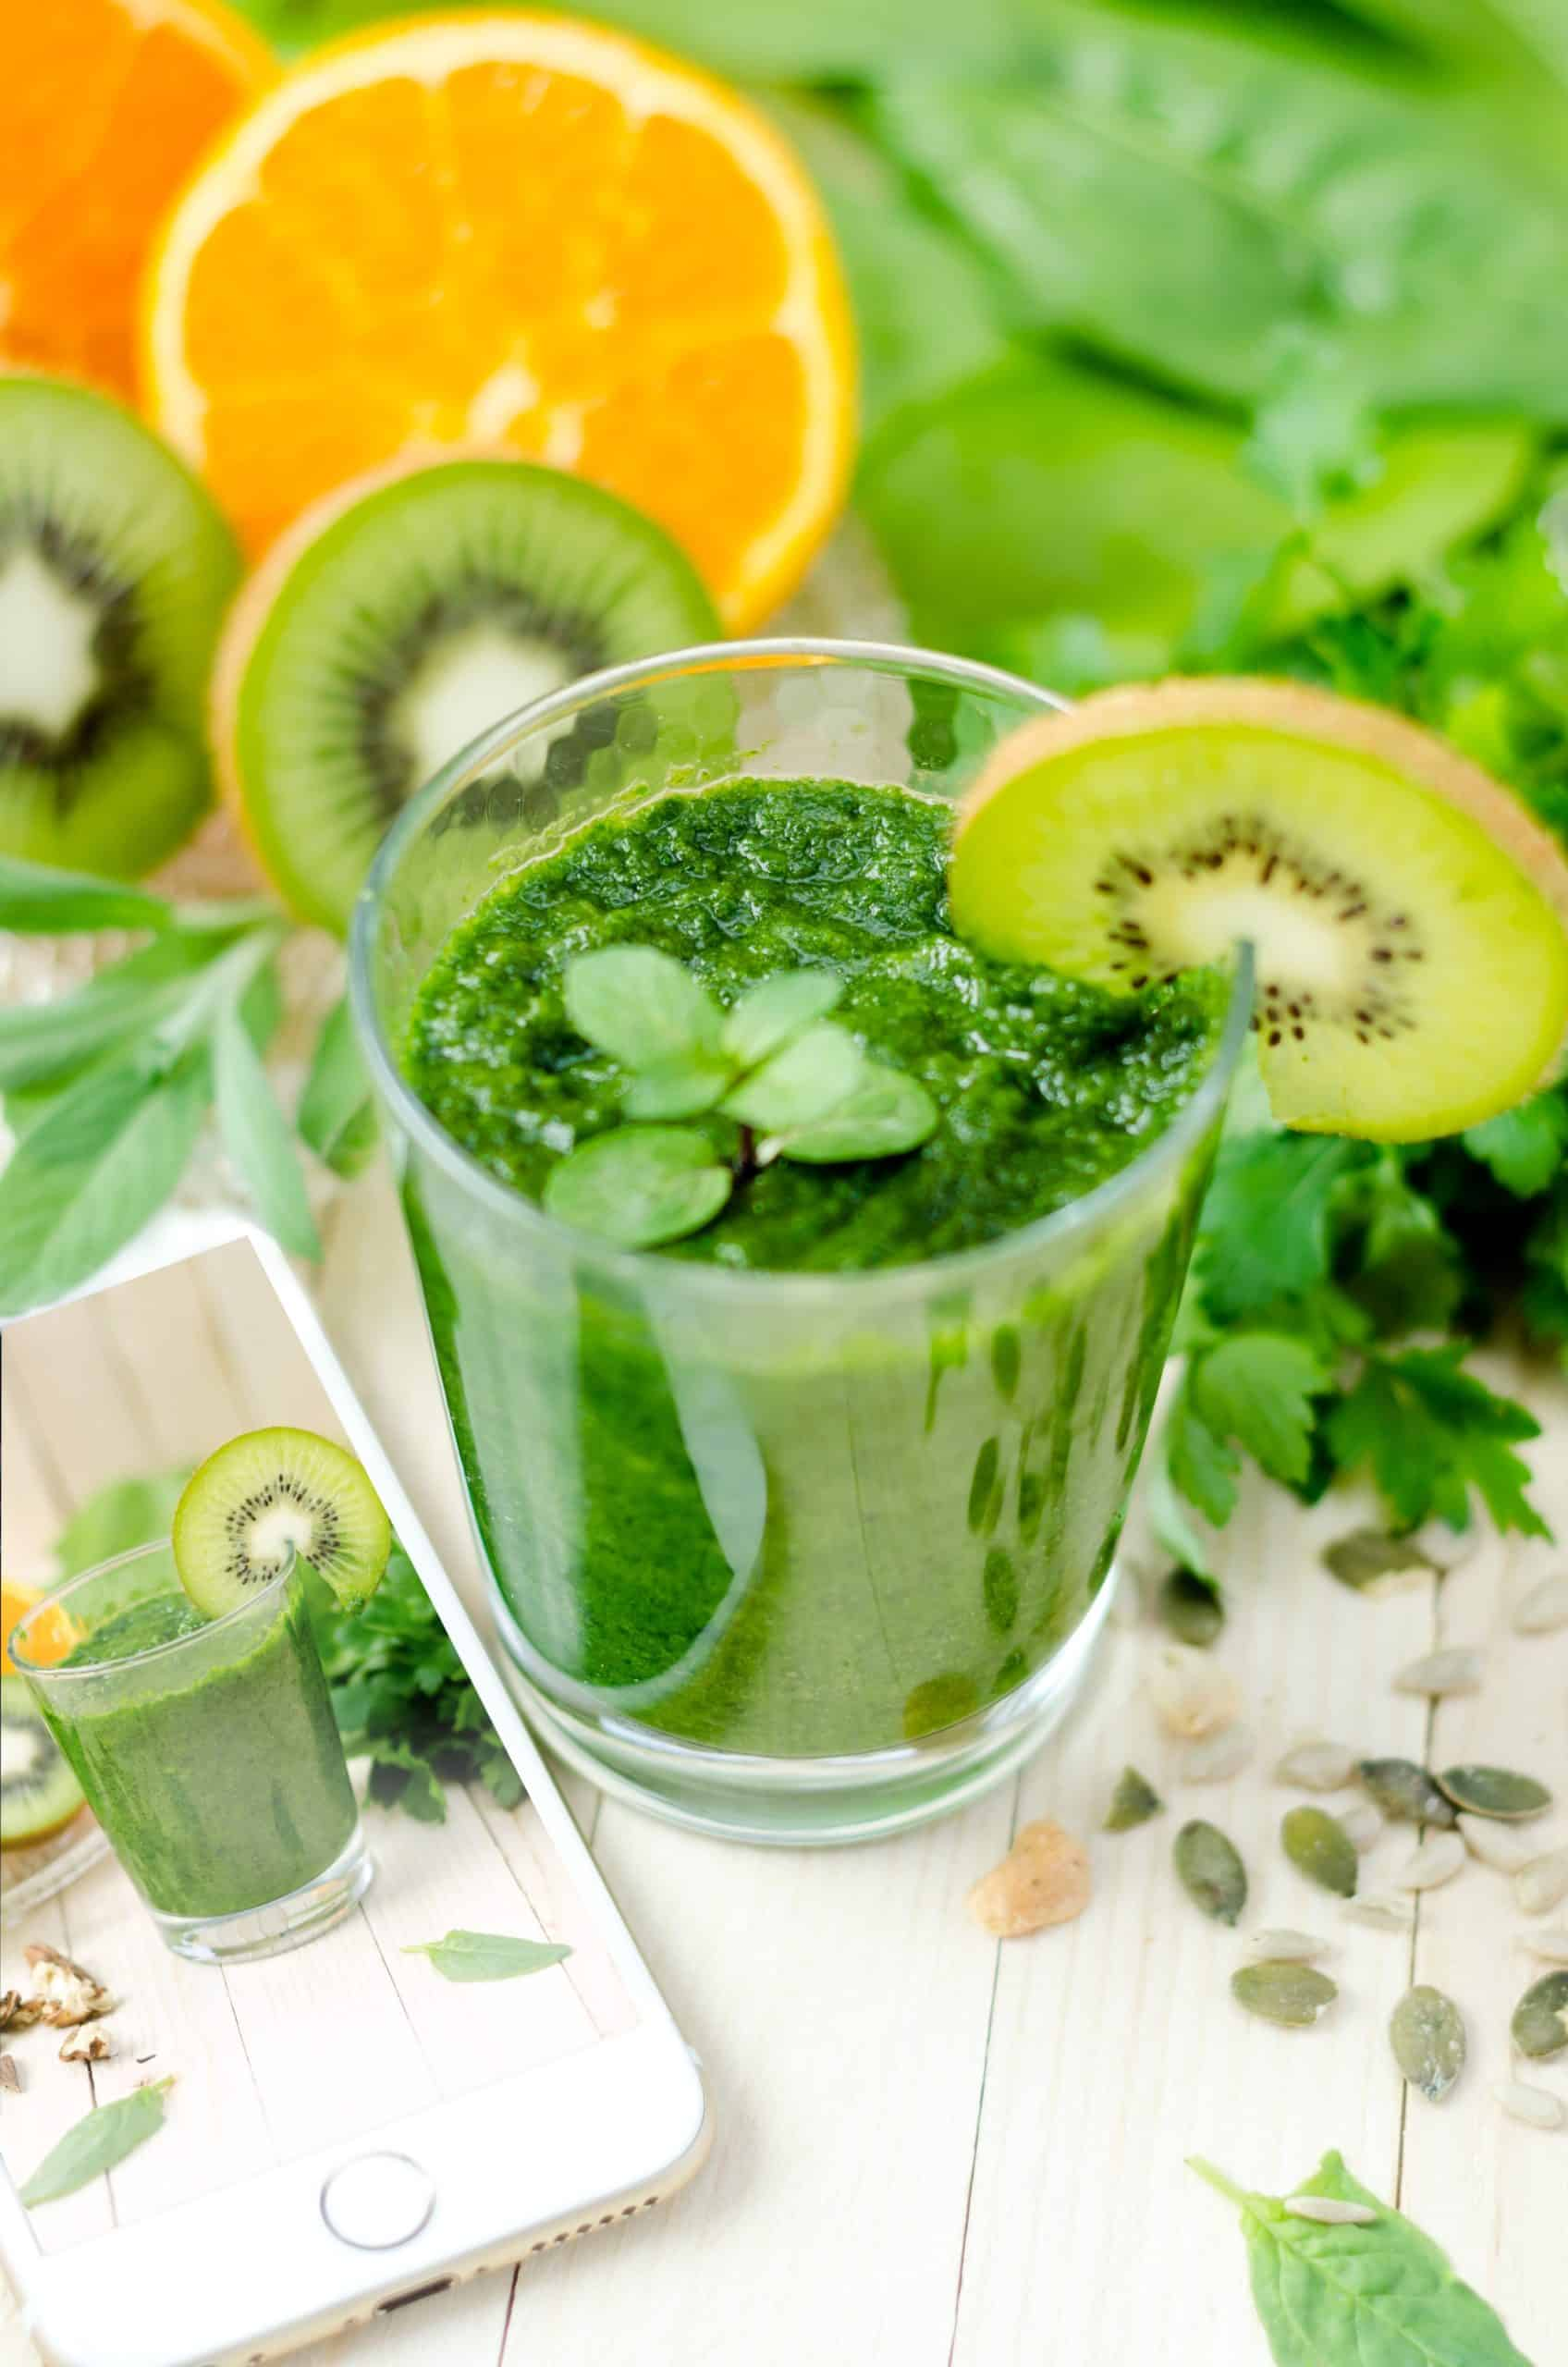 Healthy Smoothie Recipes To Enjoy